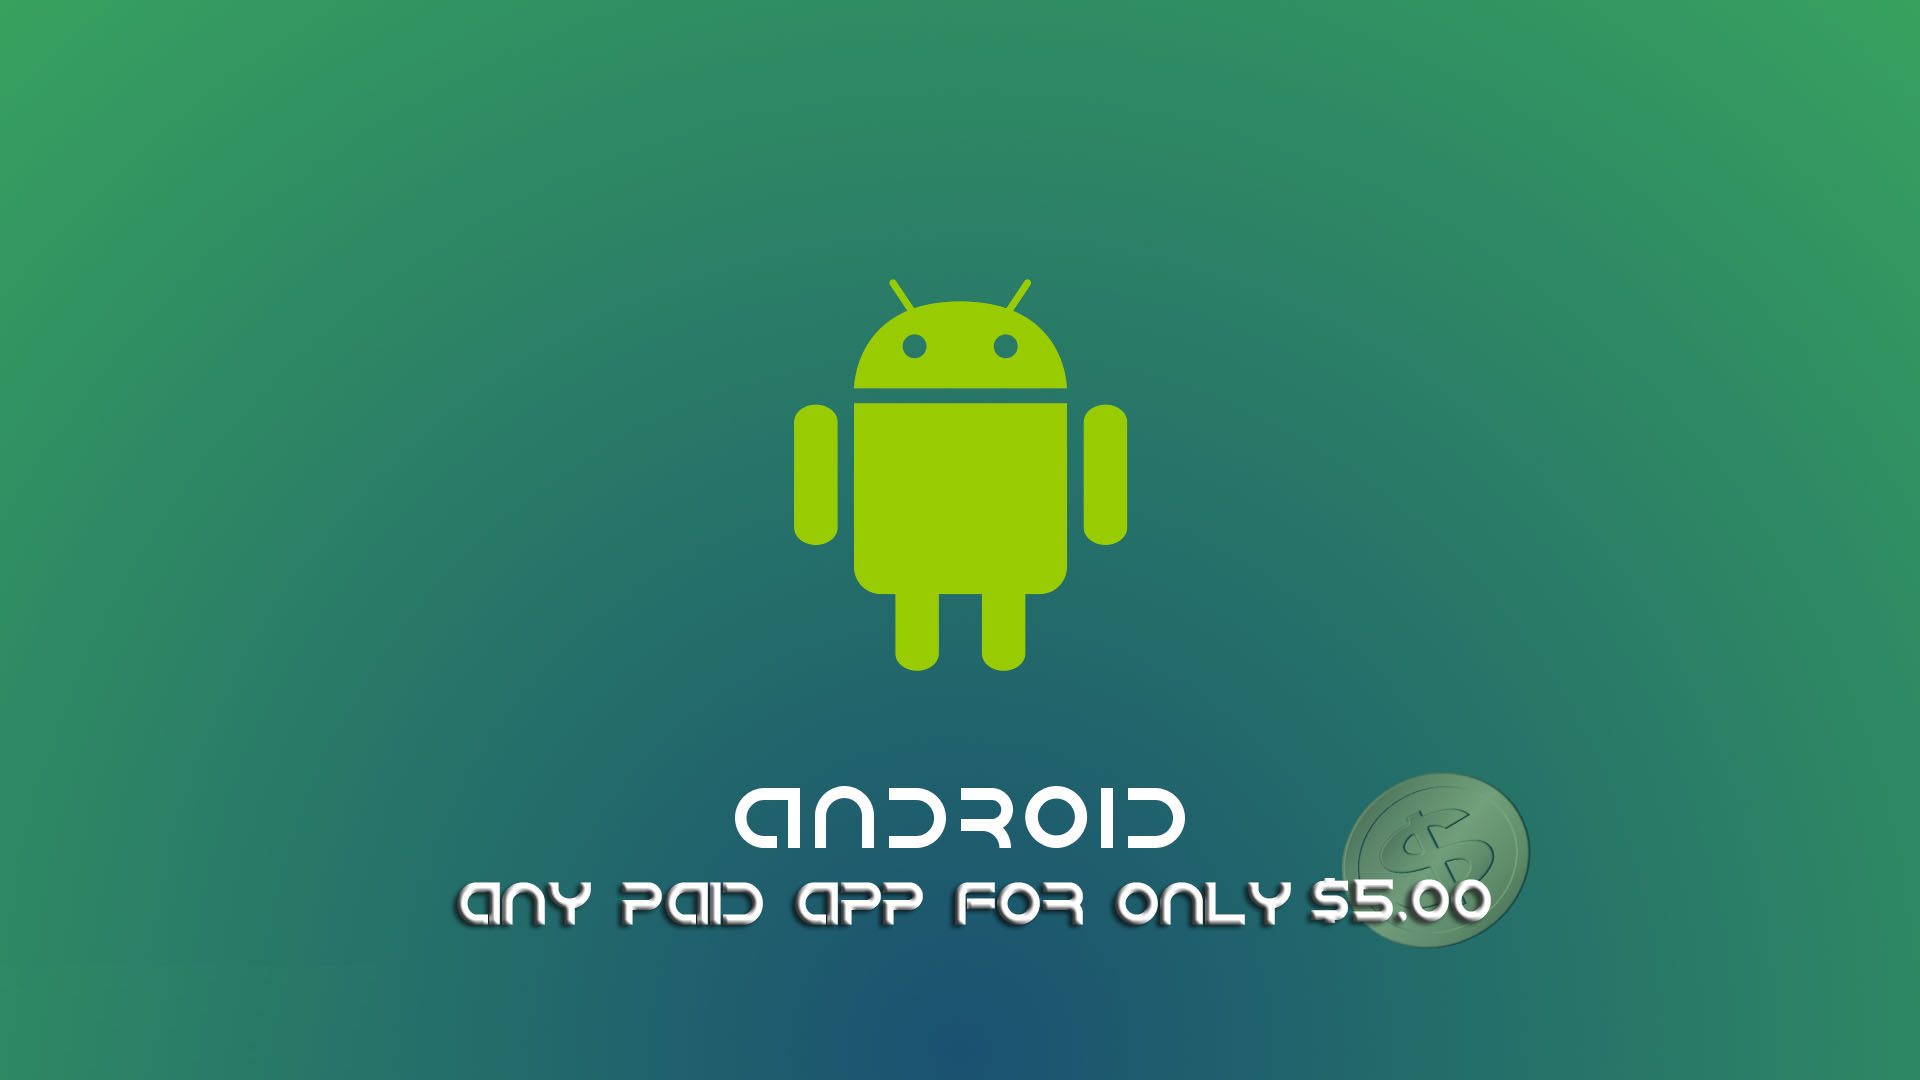 buy paid apps for you from Google Play